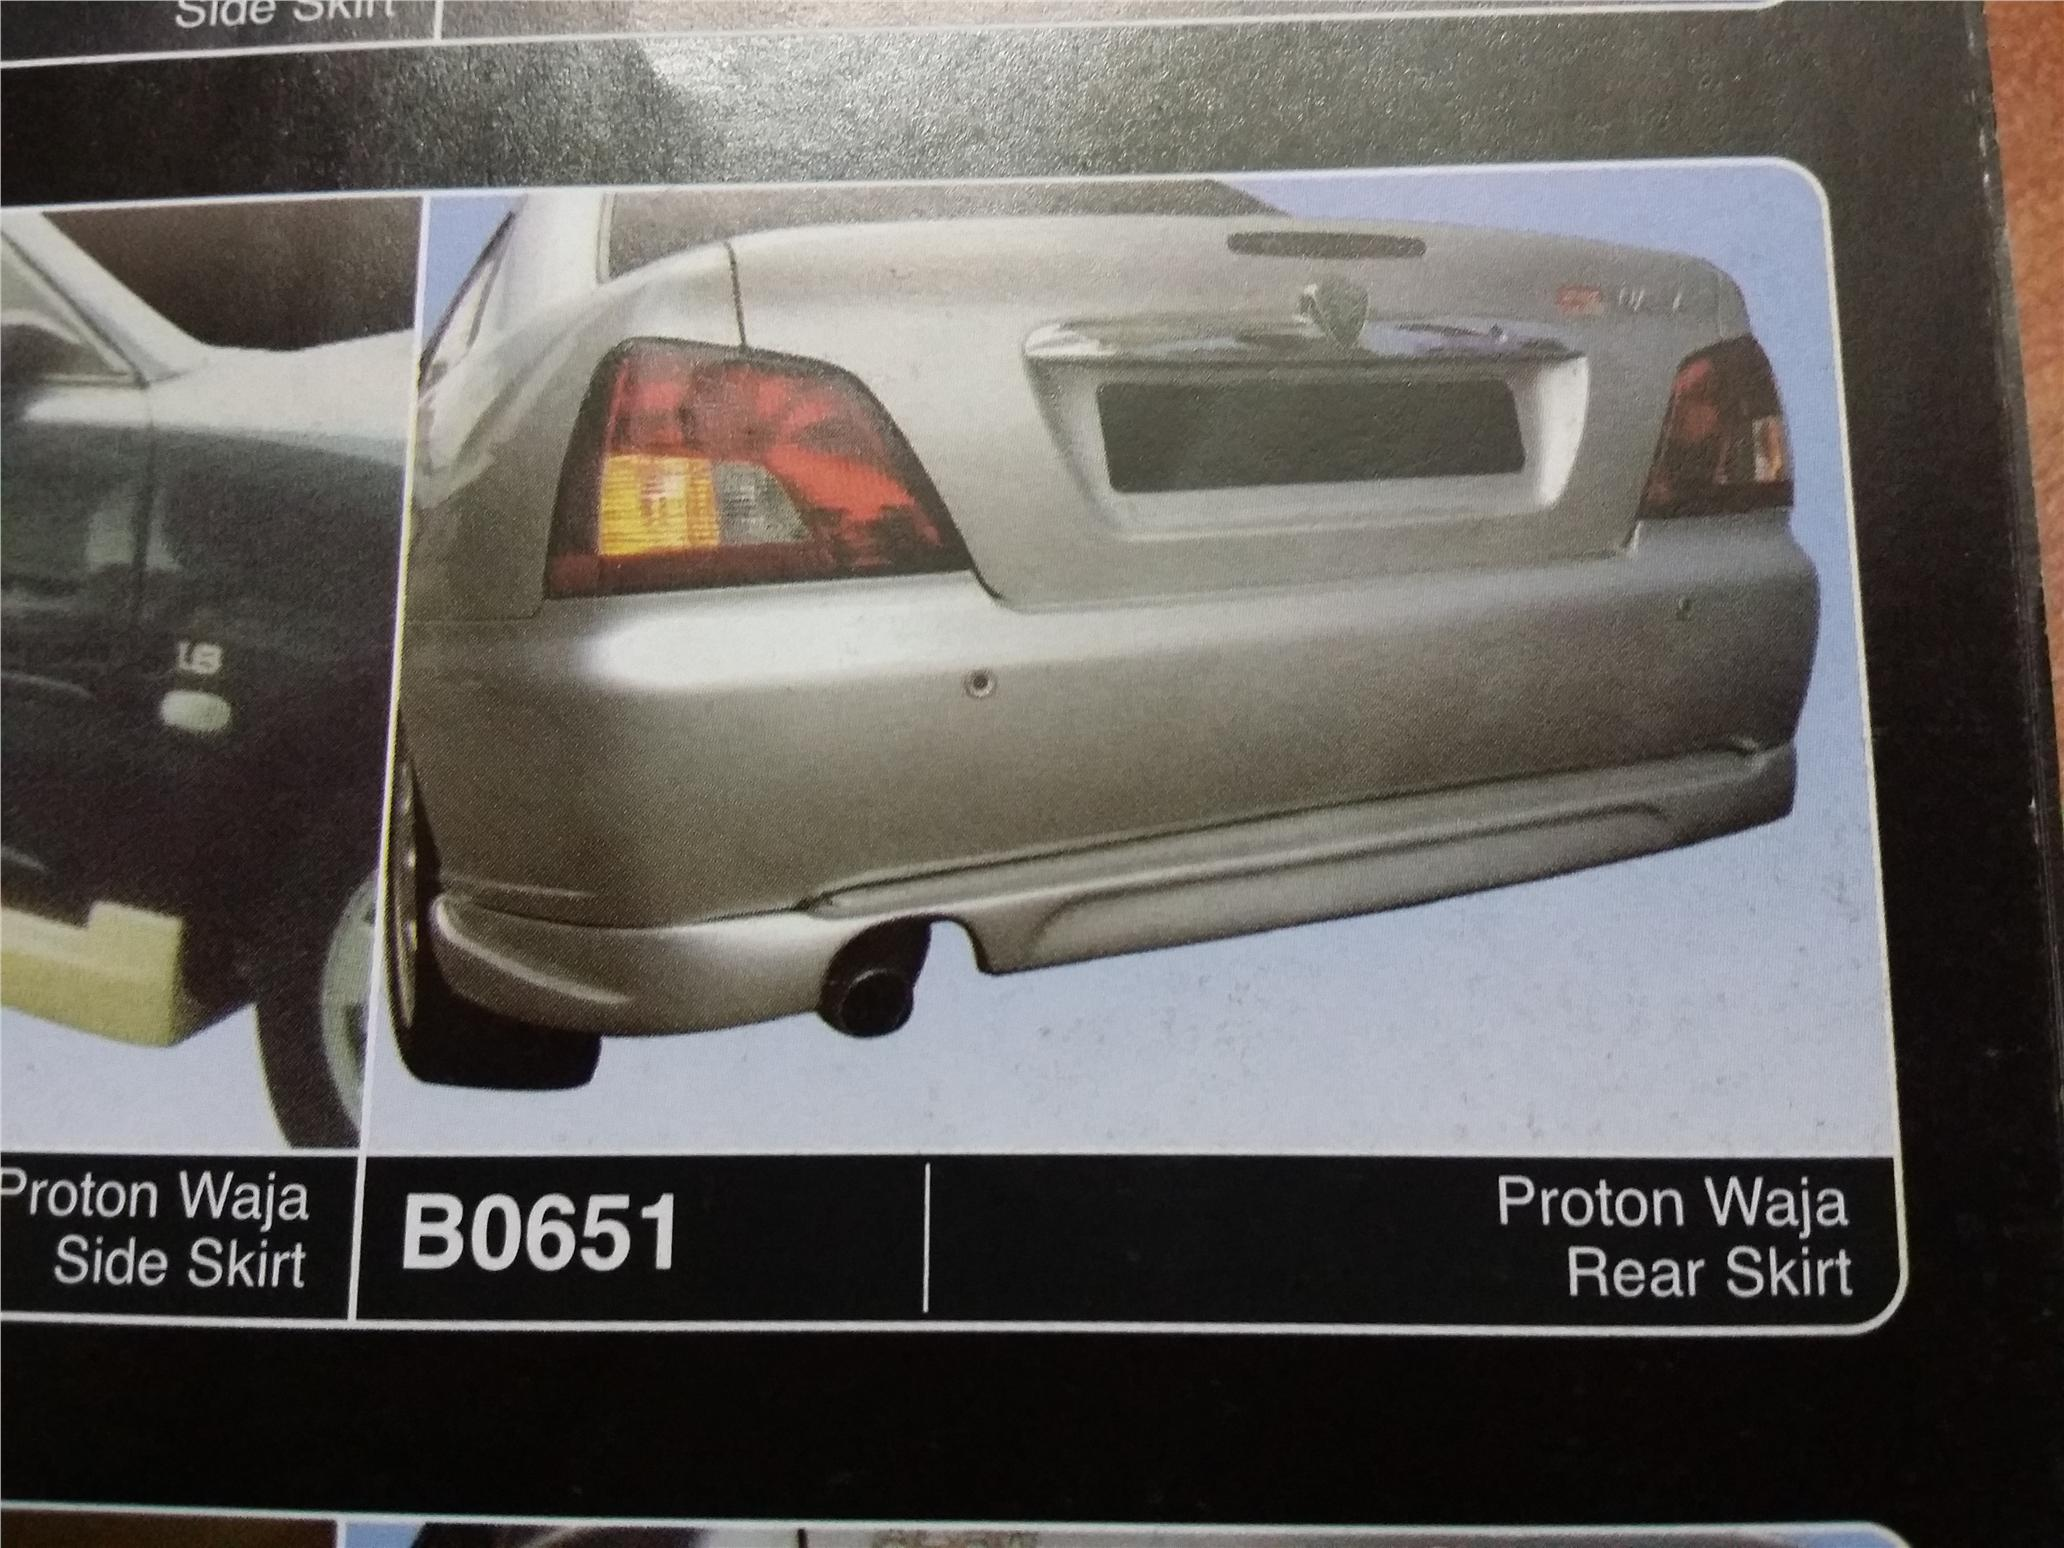 PROTON WAJA REAR SKIRT B0651